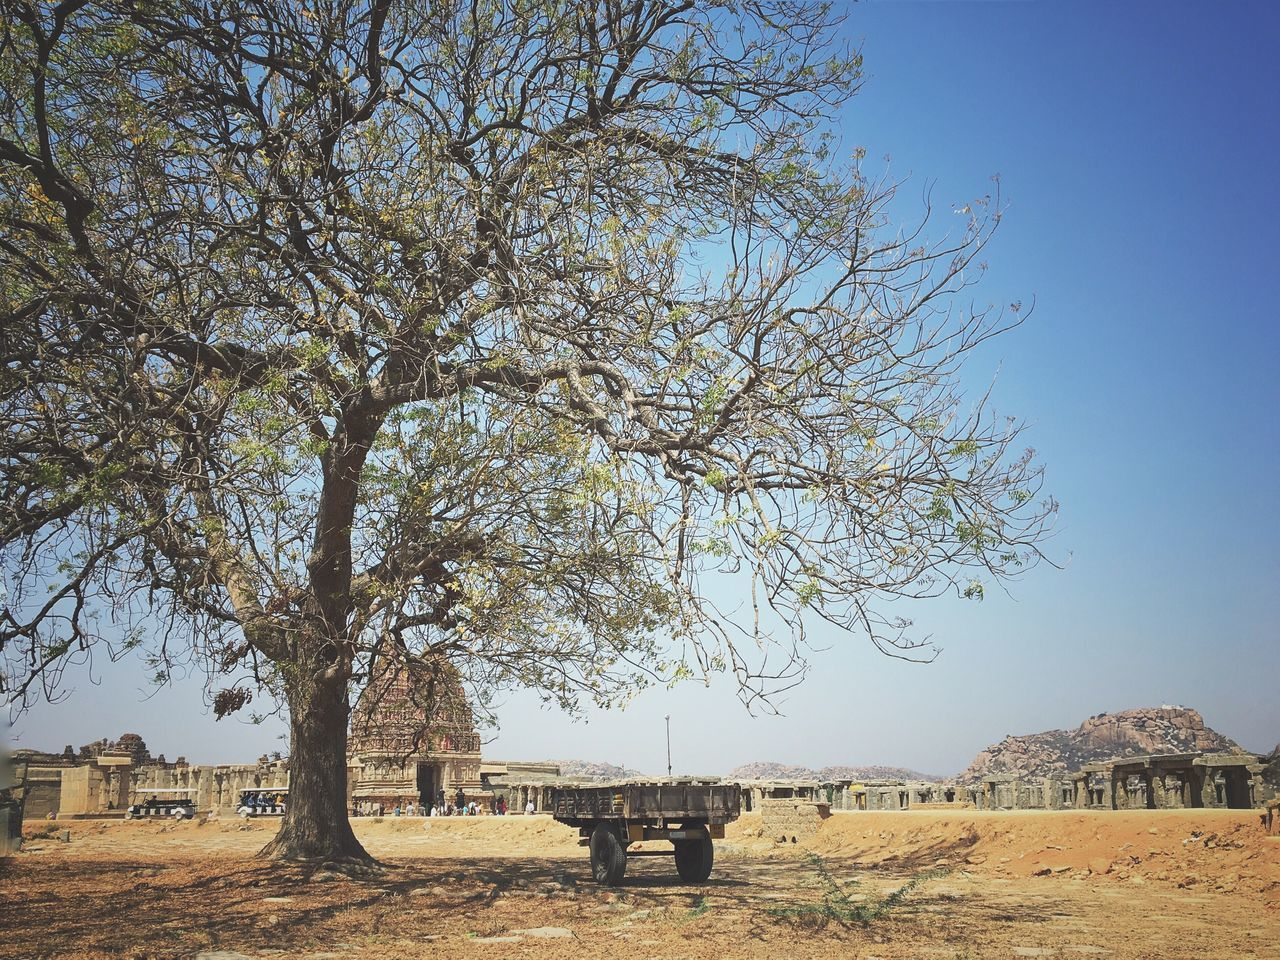 tree, nature, field, landscape, clear sky, animal themes, day, domestic animals, beauty in nature, outdoors, tranquility, one animal, mammal, grass, bare tree, no people, scenics, sky, architecture, branch